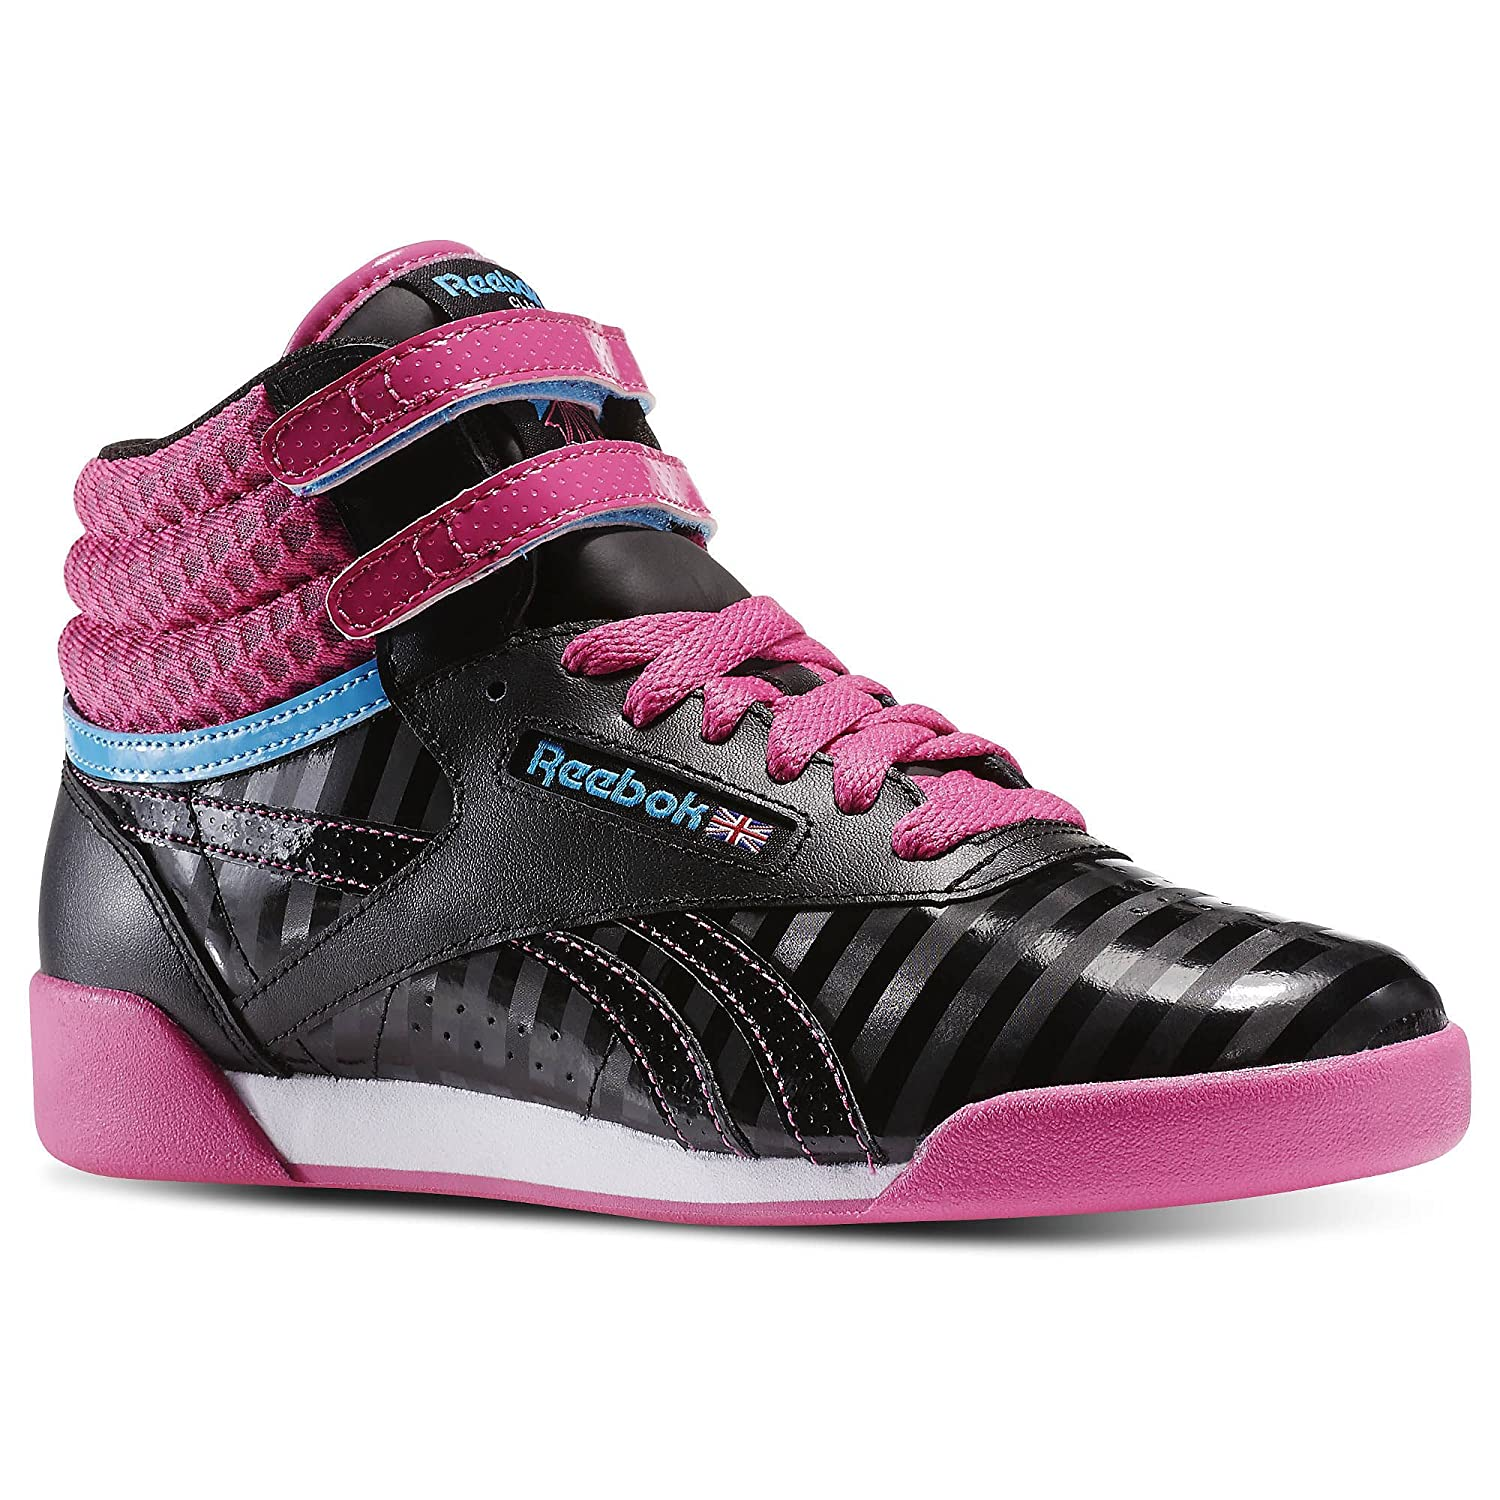 pink reebok high tops cheap   OFF56% The Largest Catalog Discounts 0c739fc73